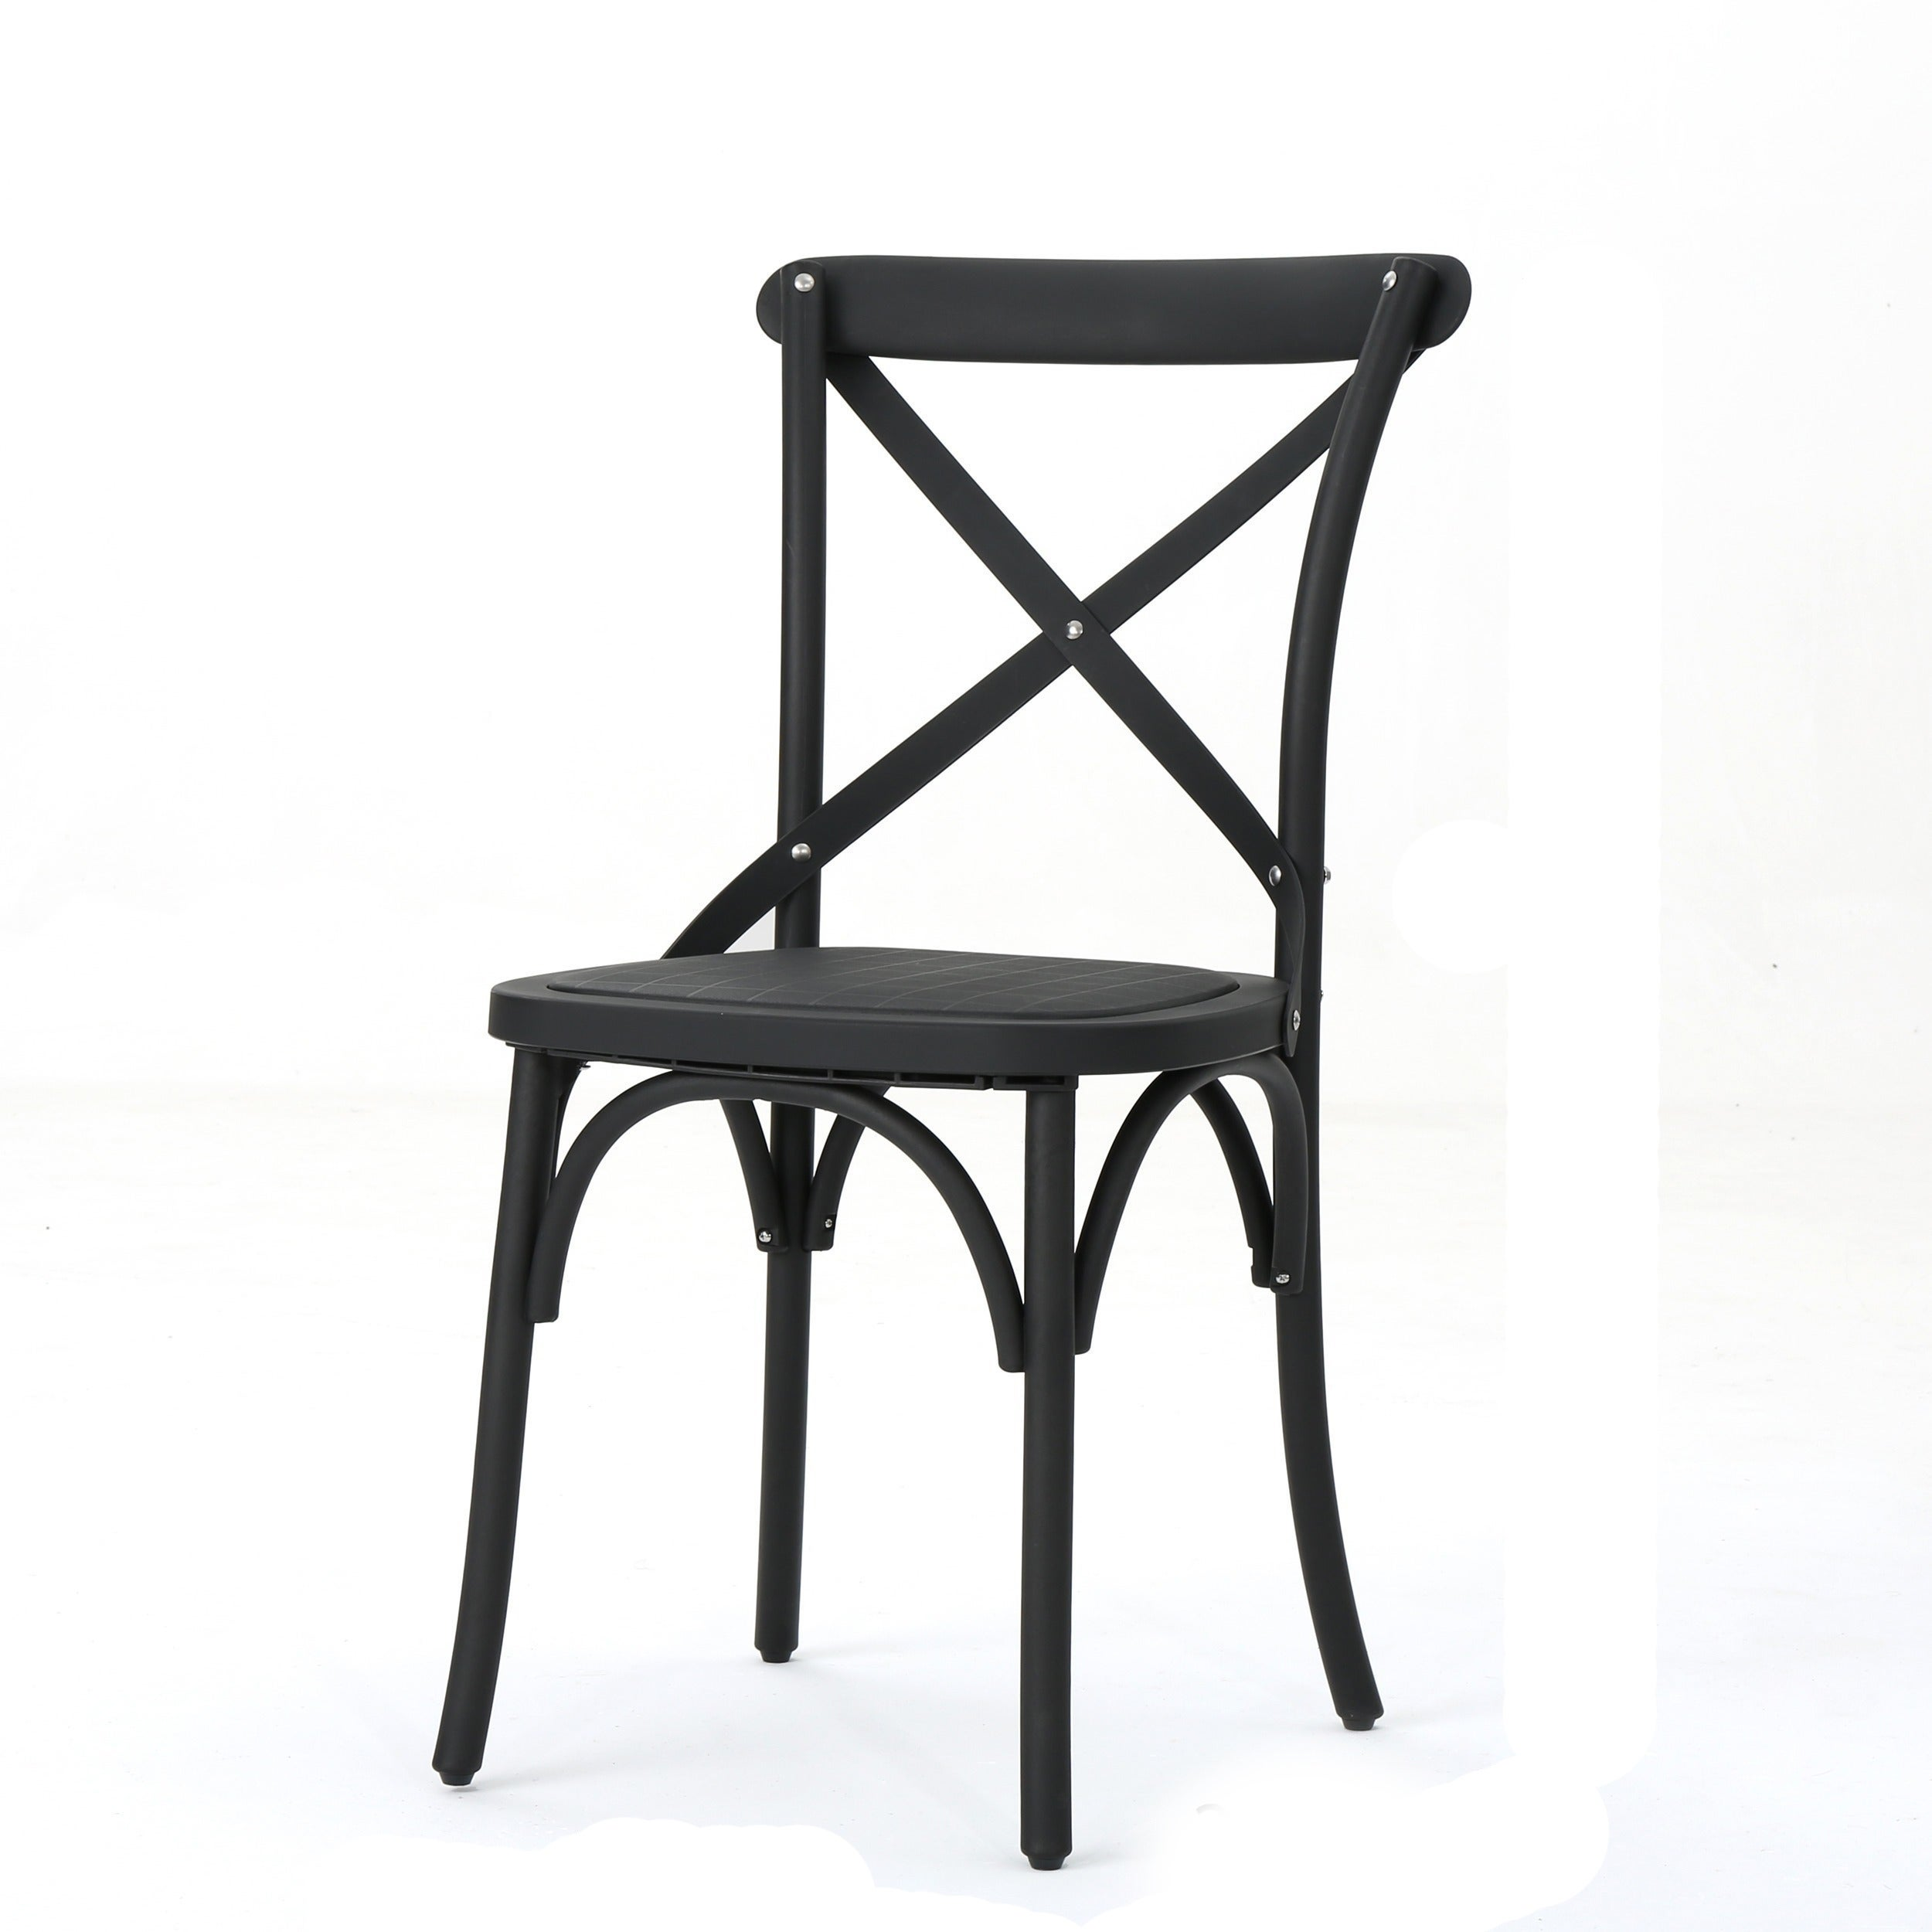 Danish Outdoor Farmhouse Dining Chair Set Of 4 By For Sale Online